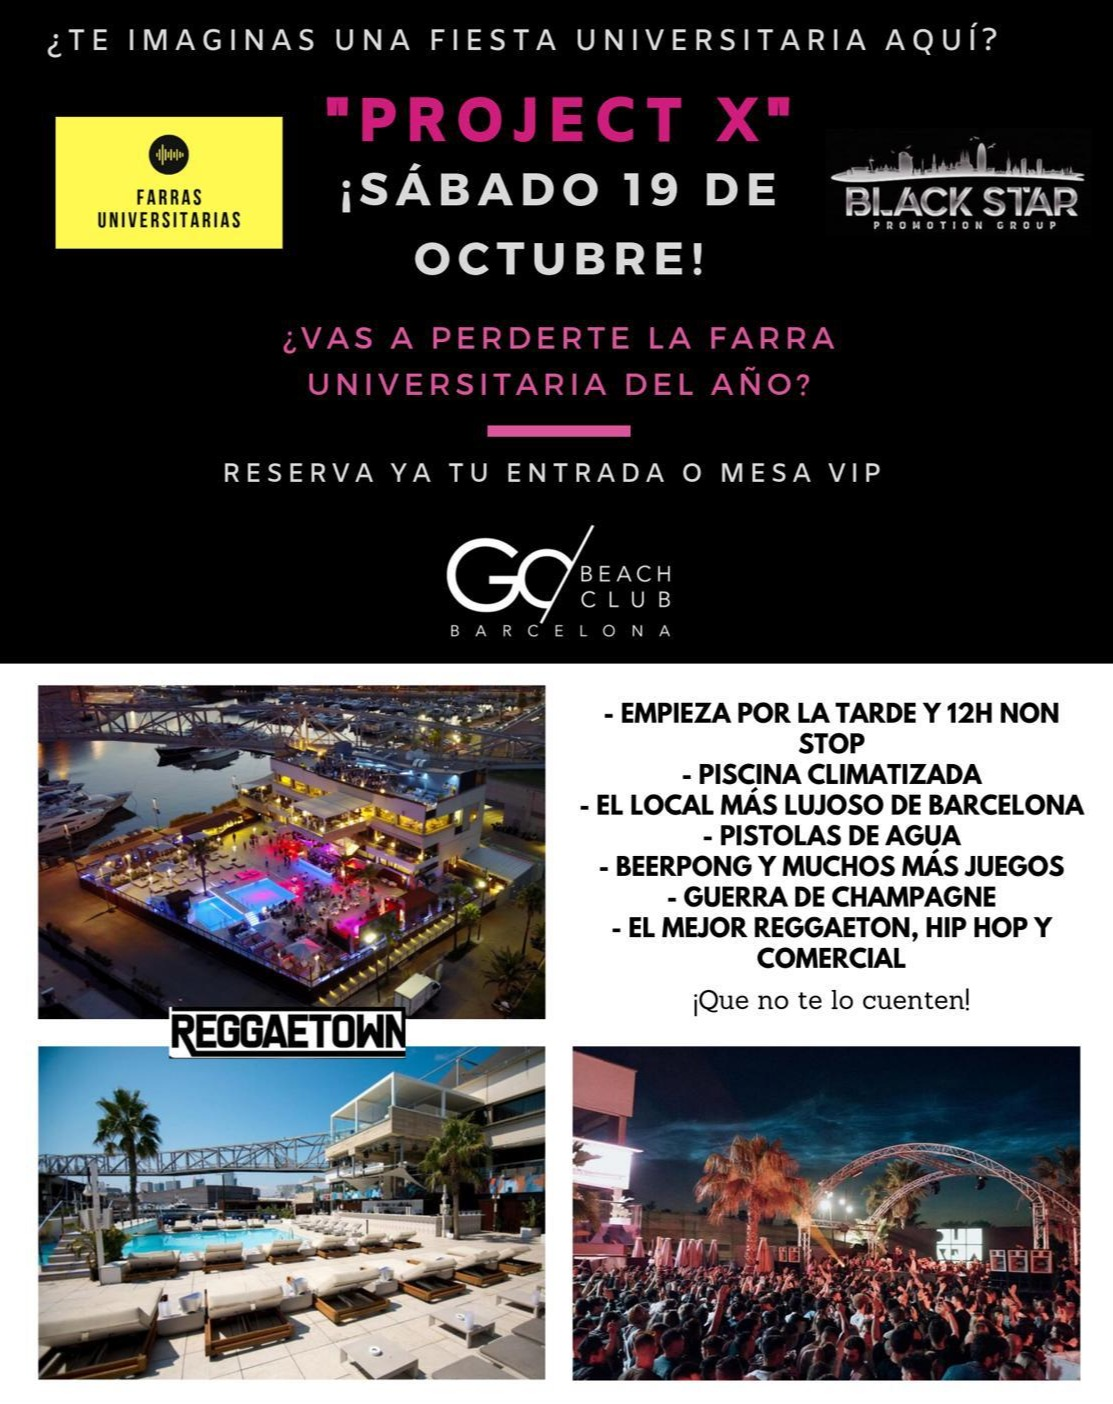 Project X - Club Go Beach Club Barcelona